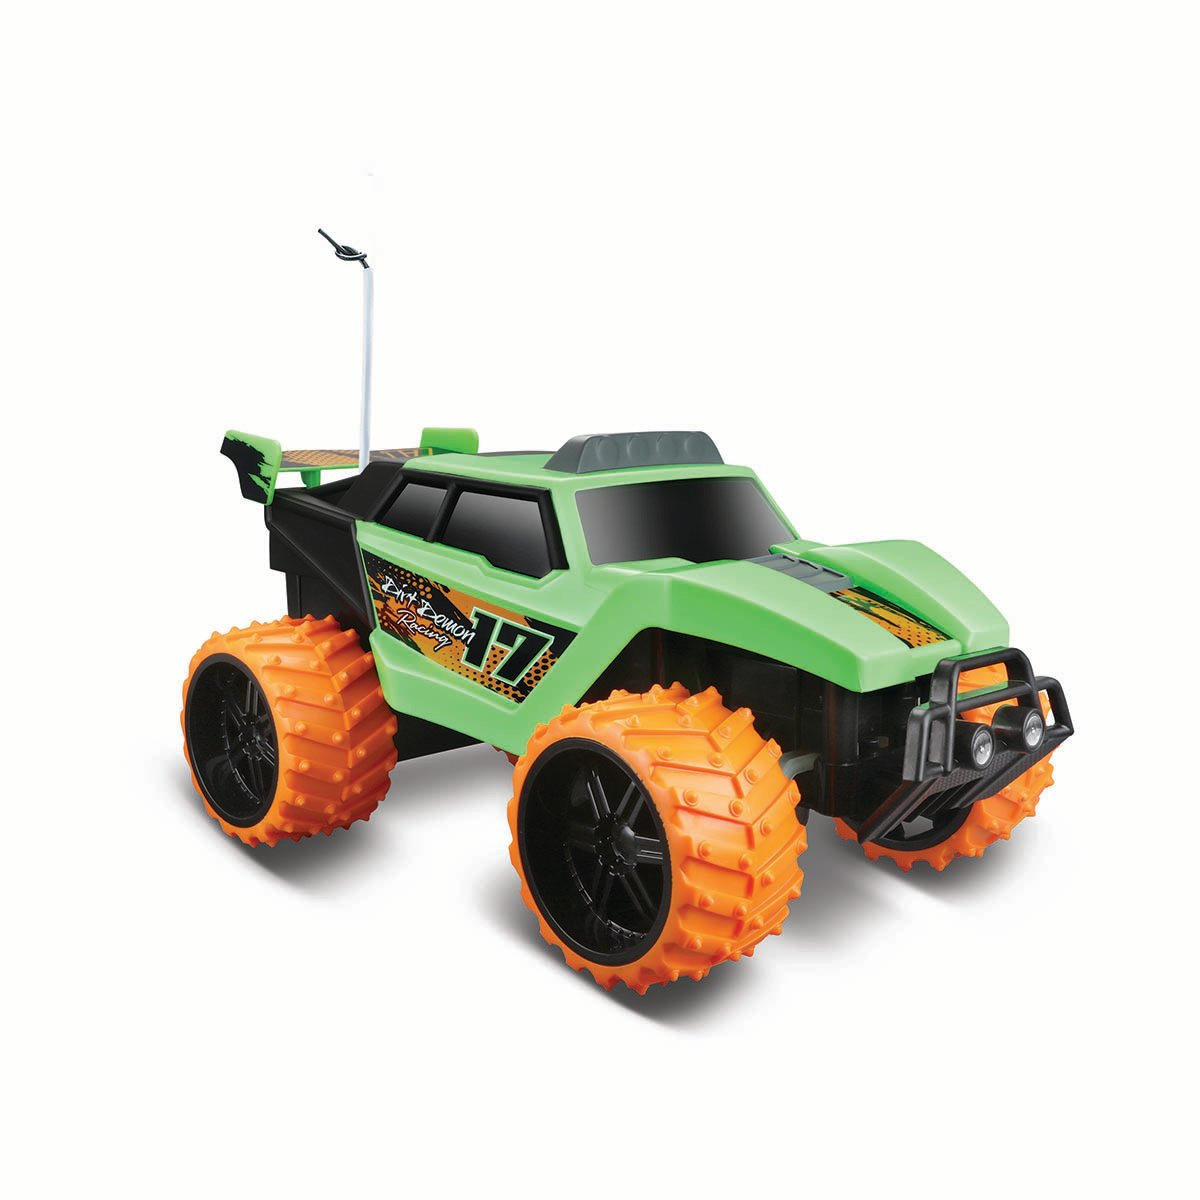 Masinuta off-road cu telecomanda Dirt Demon Maisto, 1:16, Verde